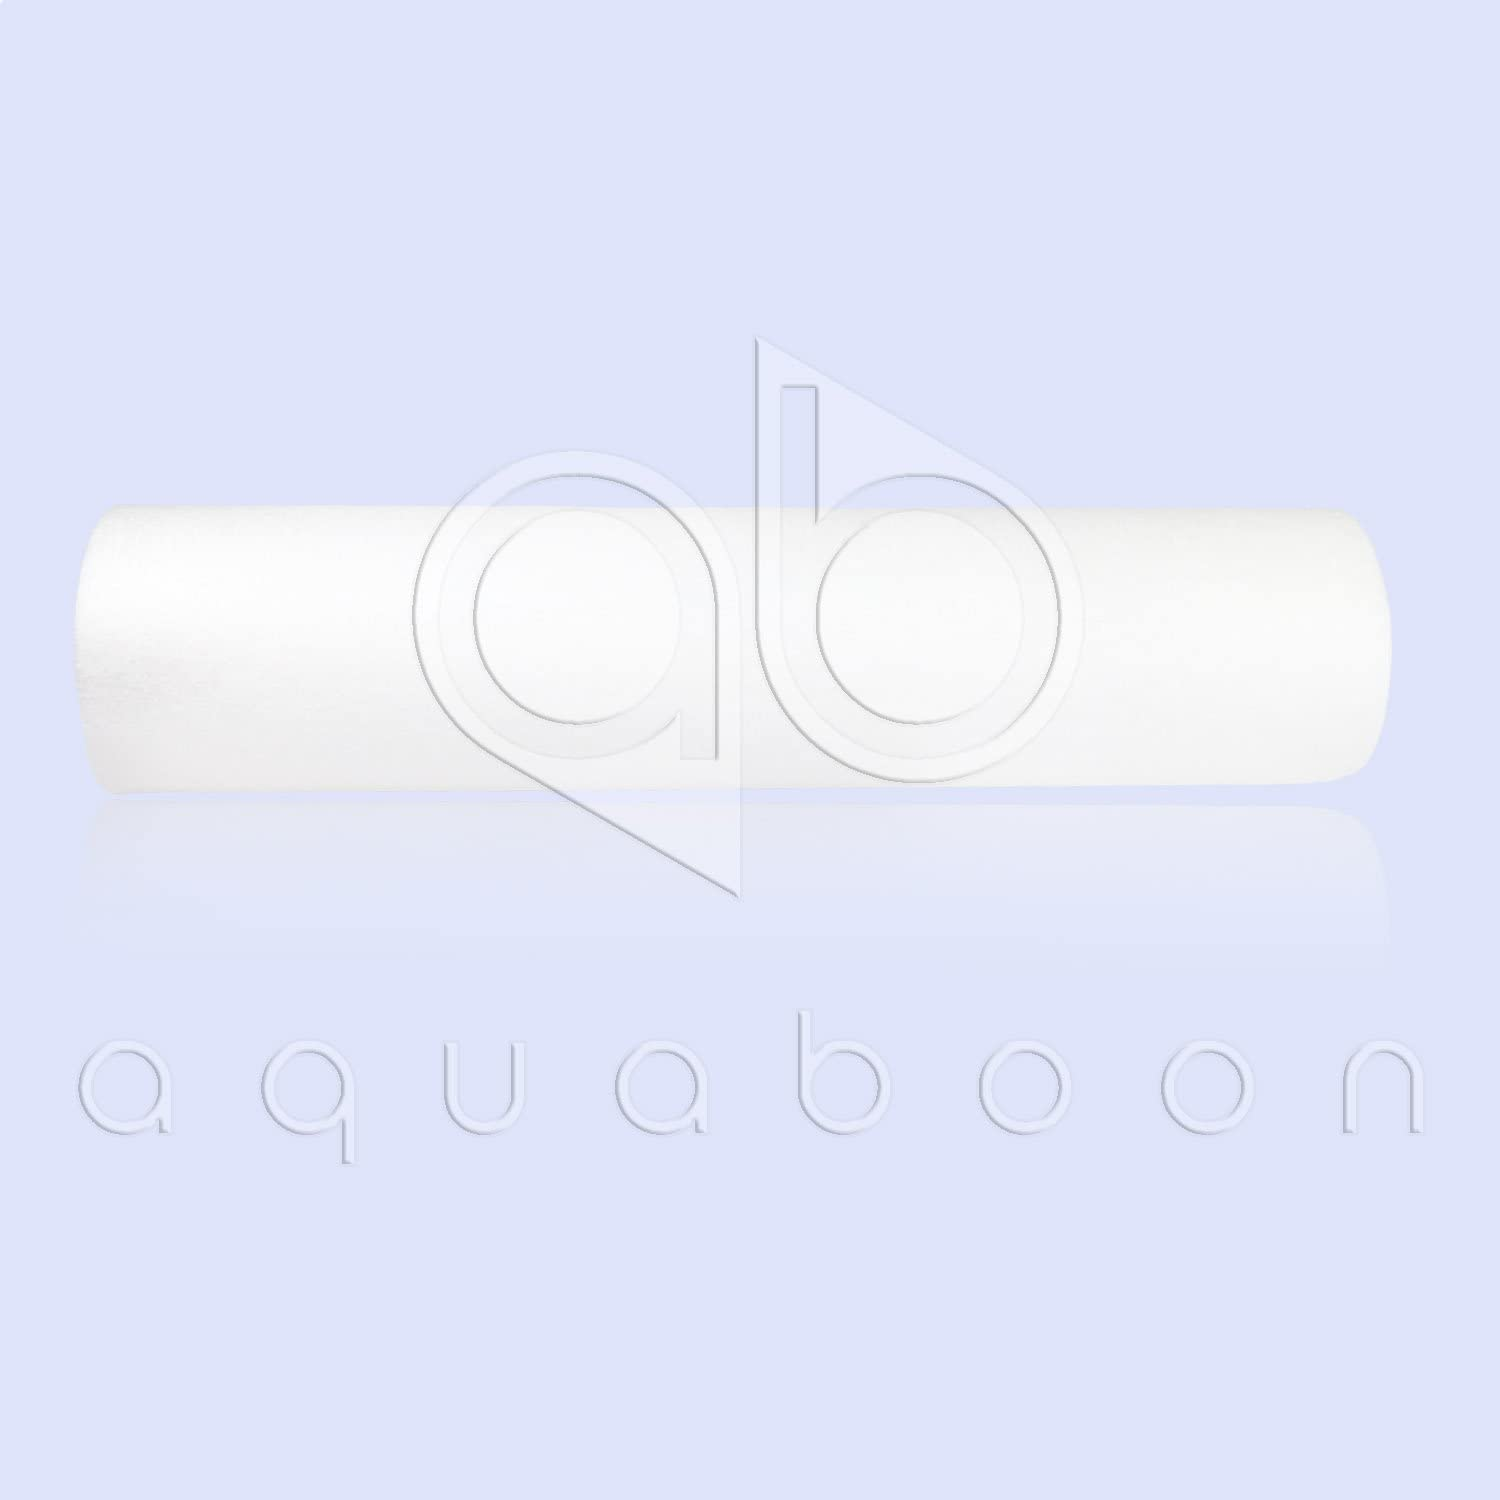 """Aquaboon 25-Pack of 5 Micron 10"""" Sediment Water Filter Replacement Cartridge for Any Standard RO Unit   Whole House Sediment Filtration   Compatible with Dupont WFPFC5002, Pentek DGD Series, RFC: Home & Kitchen"""